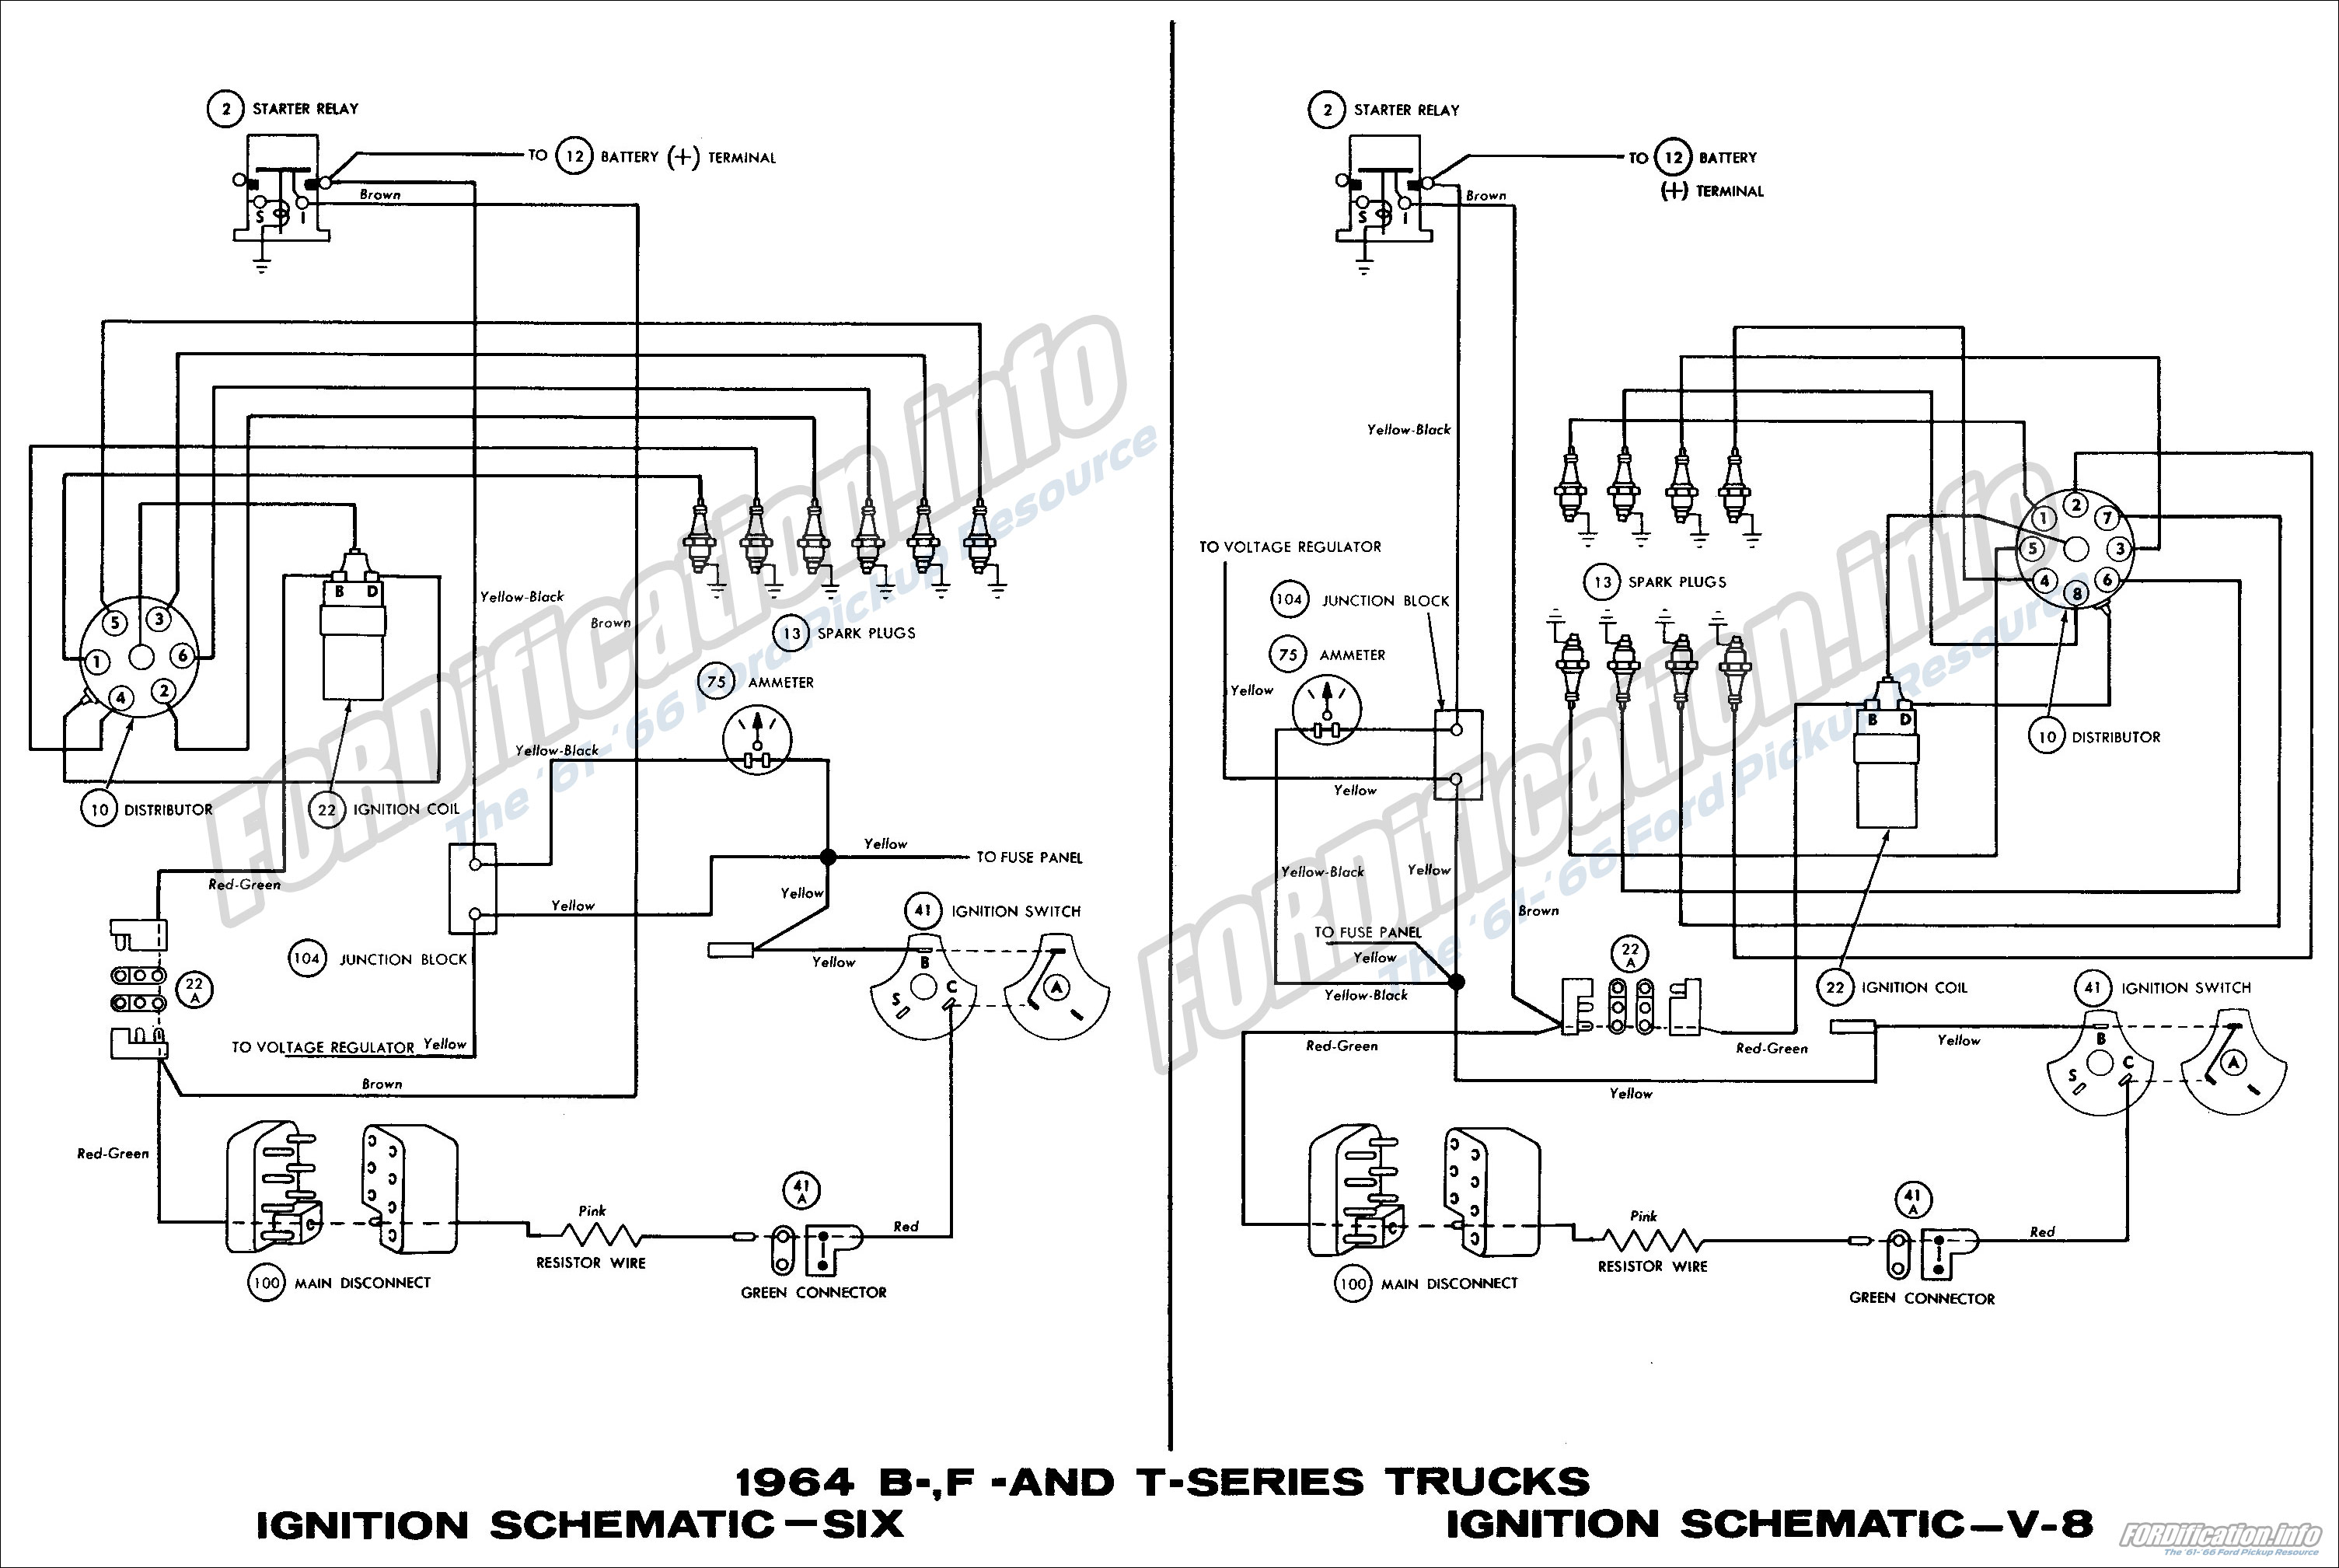 1964_03 1964 ford truck wiring diagrams fordification info the '61 '66 fordification wiring diagram at gsmportal.co